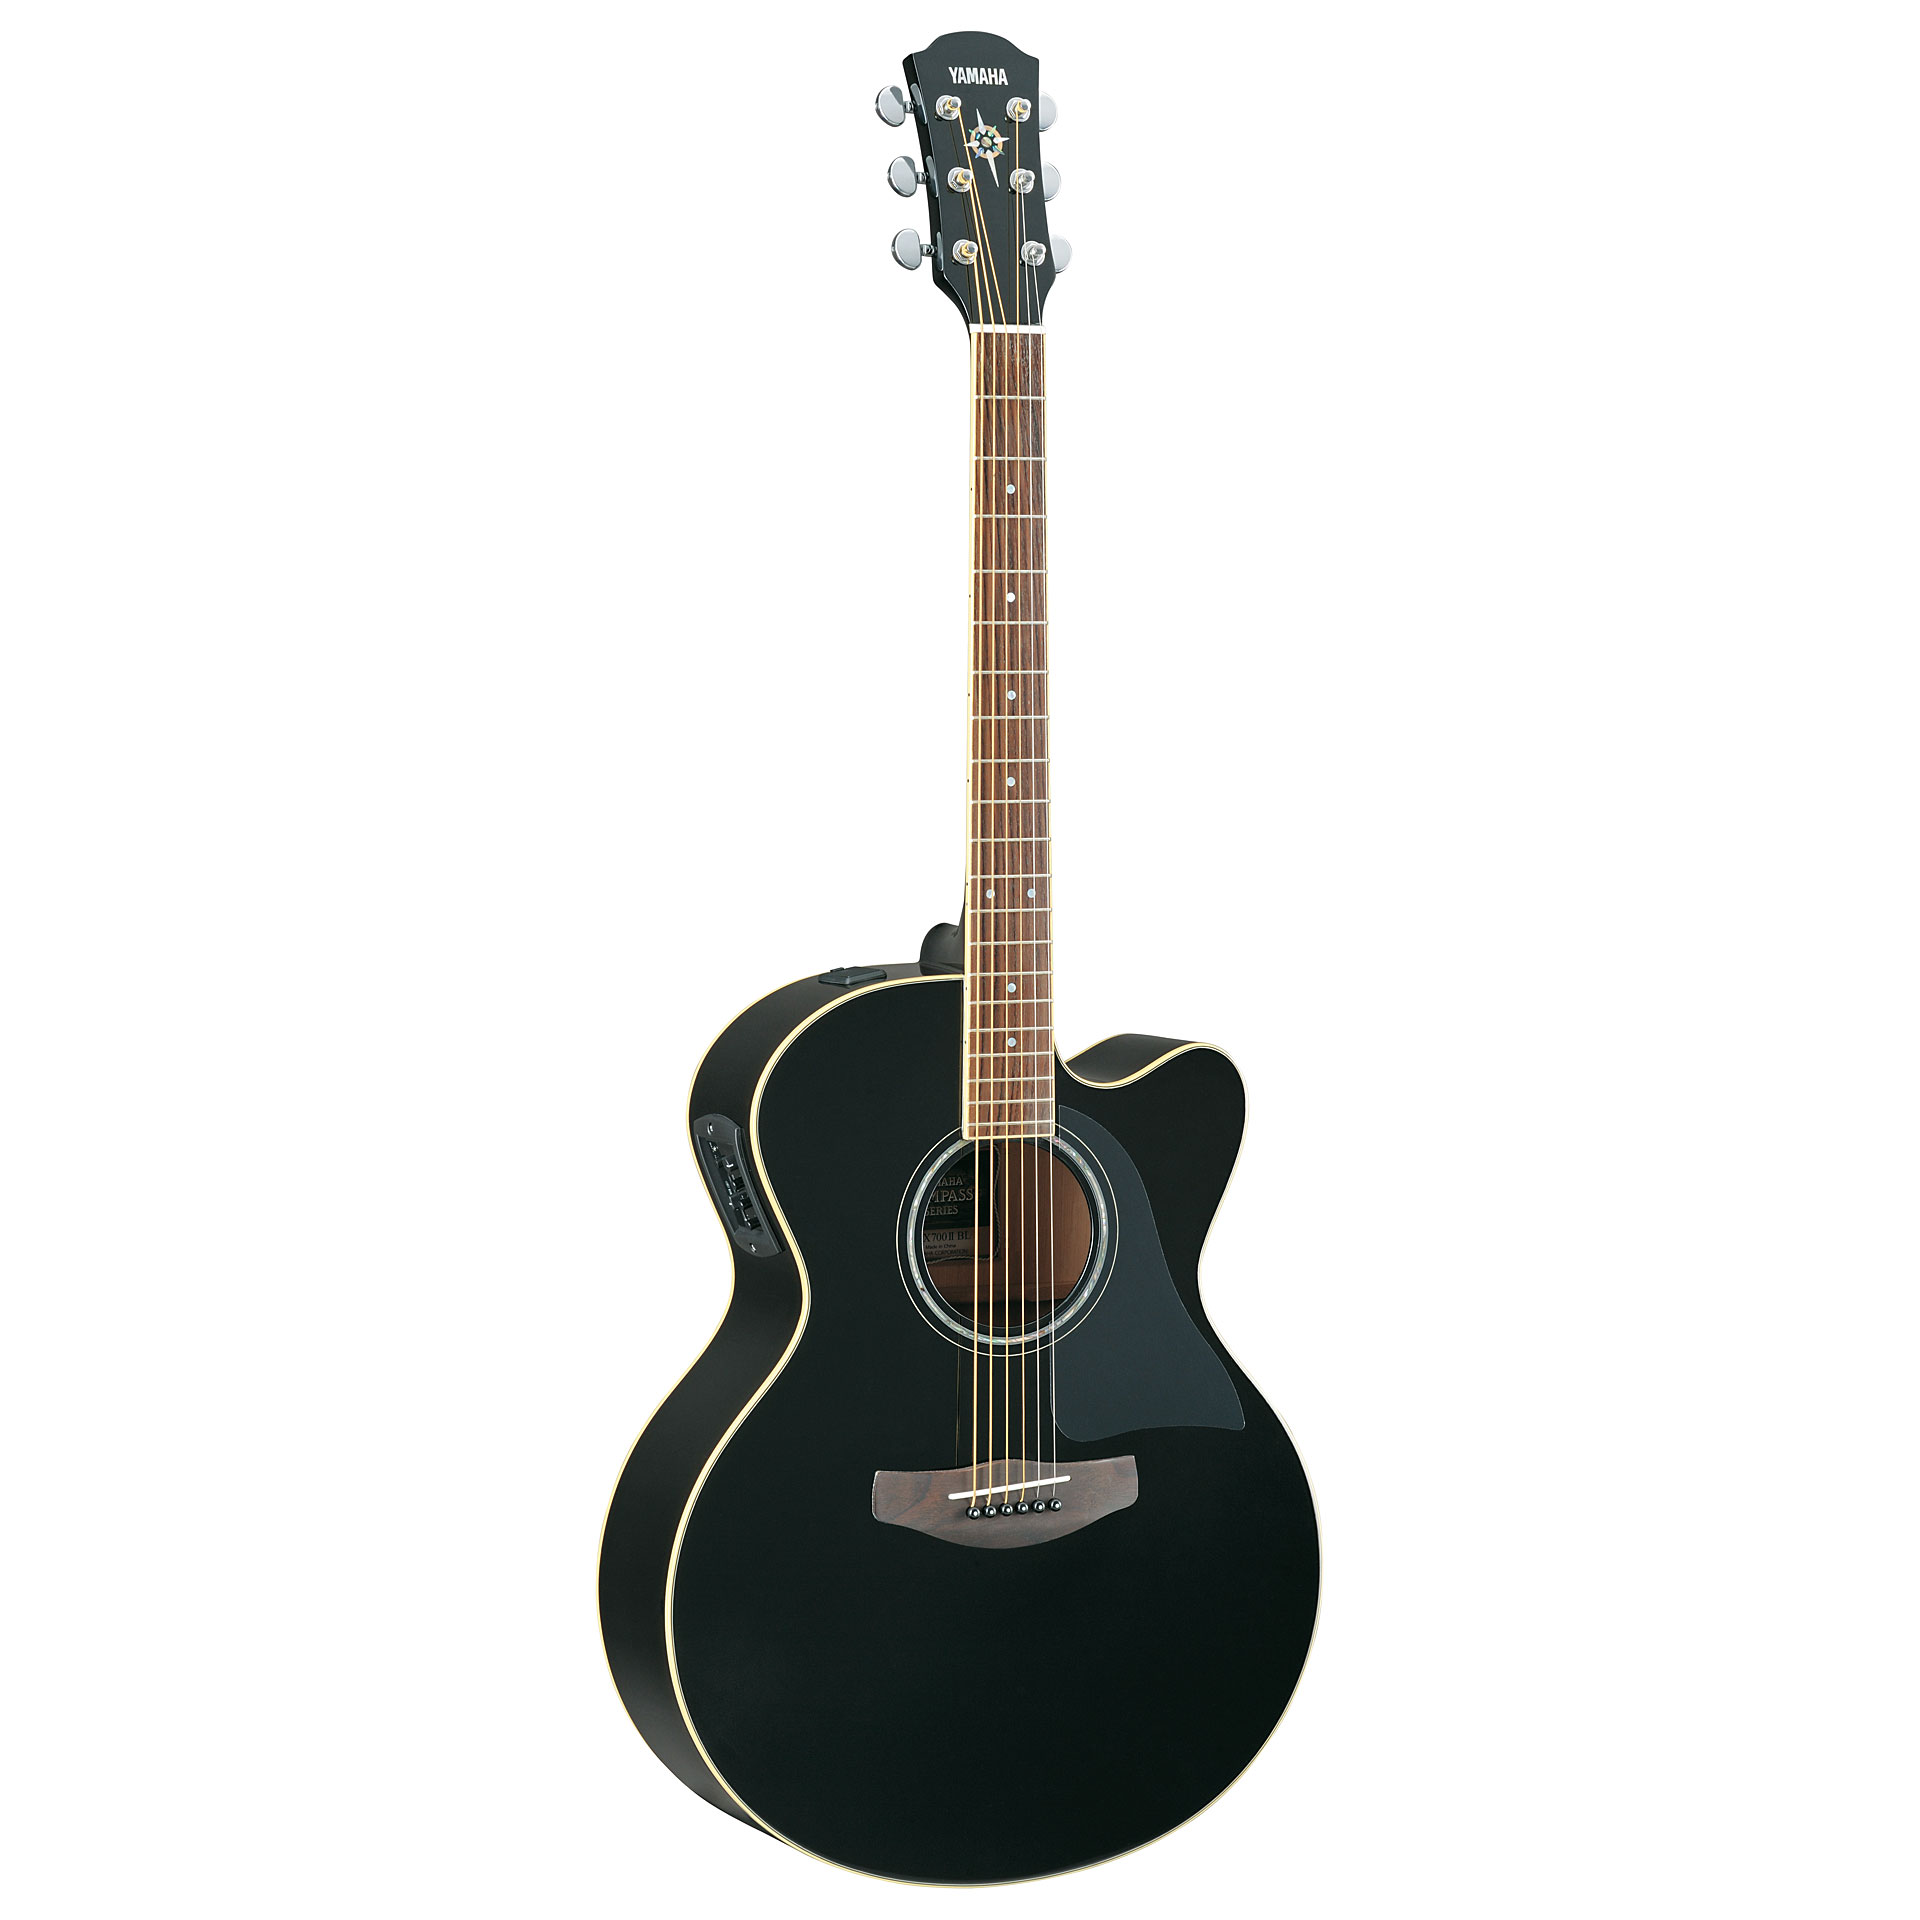 Yamaha cpx500iii bl acoustic guitar for Yamaha acoustic bass guitar